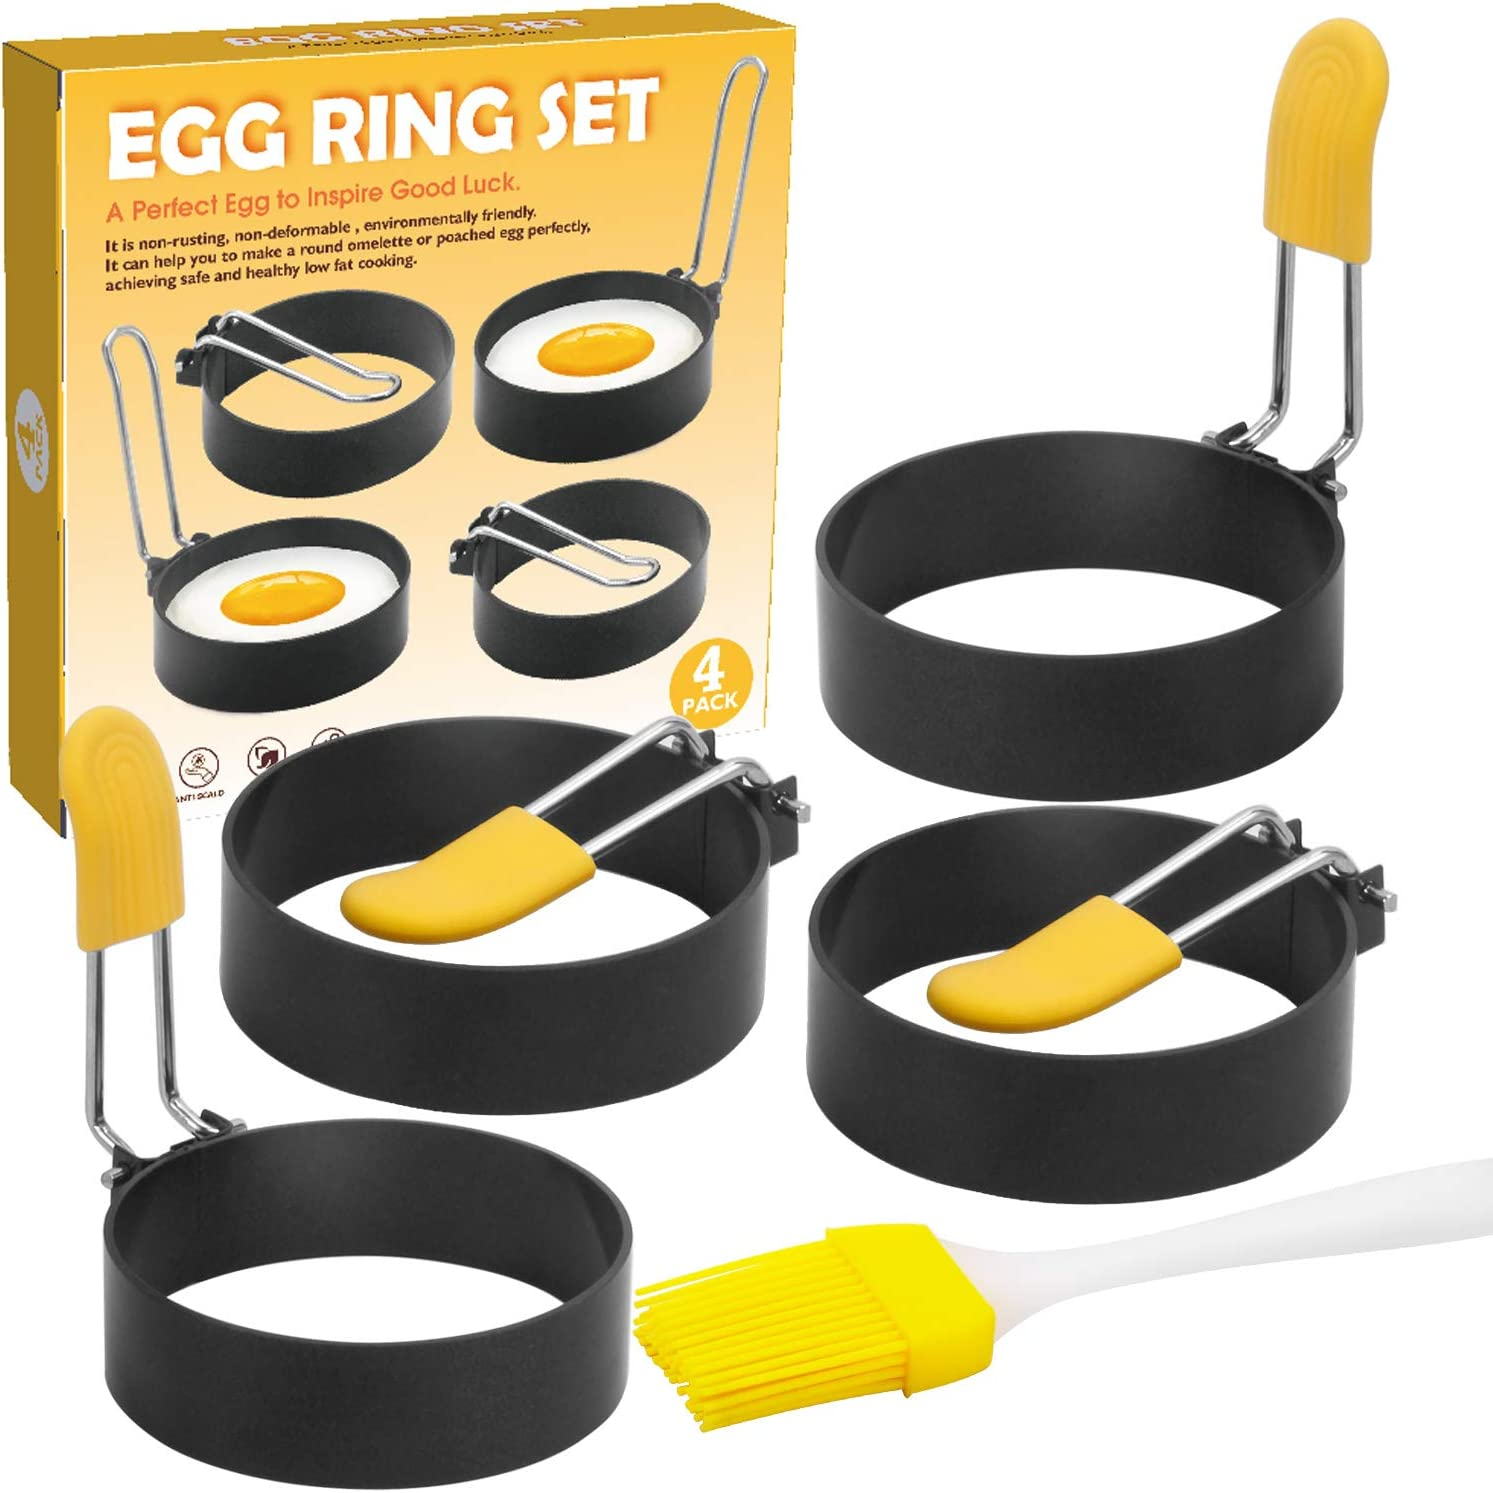 Egg Rings for Egg Mcmuffins, 4 Pack Egg Shapers for Frying, Fried Egg Maker Mold for Cooking, Non Stick Metal Round Egg Cooker Ring for Breakfast,Kitchen Cooking Tools Egg Rings for Griddle…